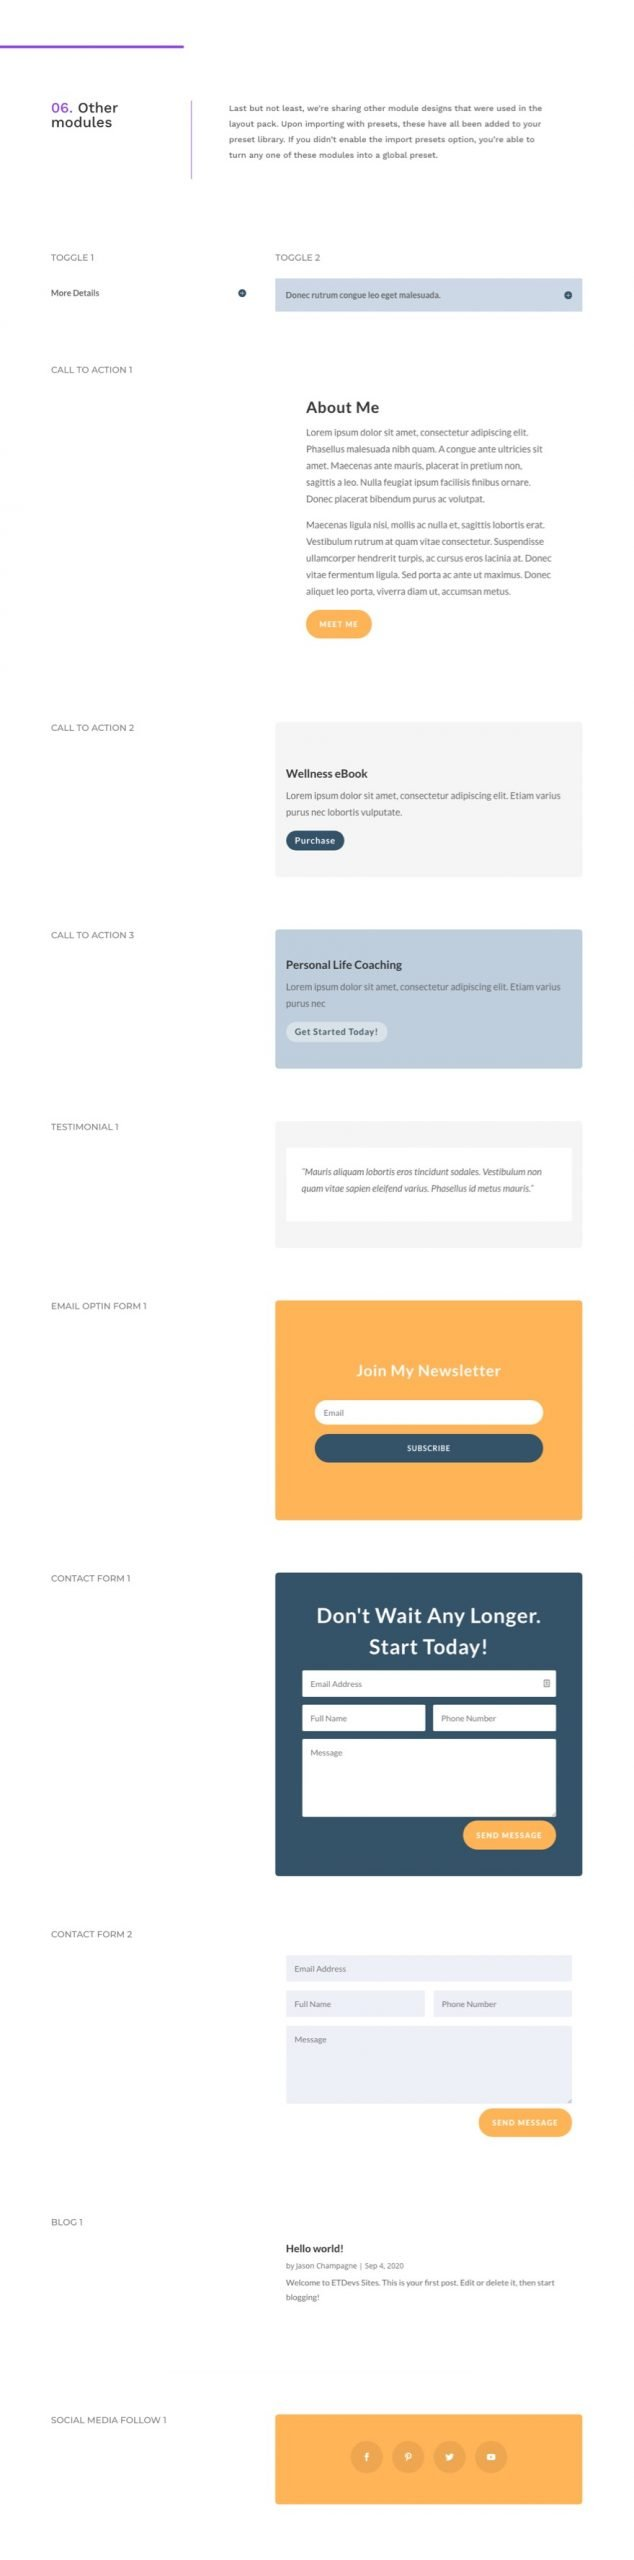 divi life coach global presets style guide